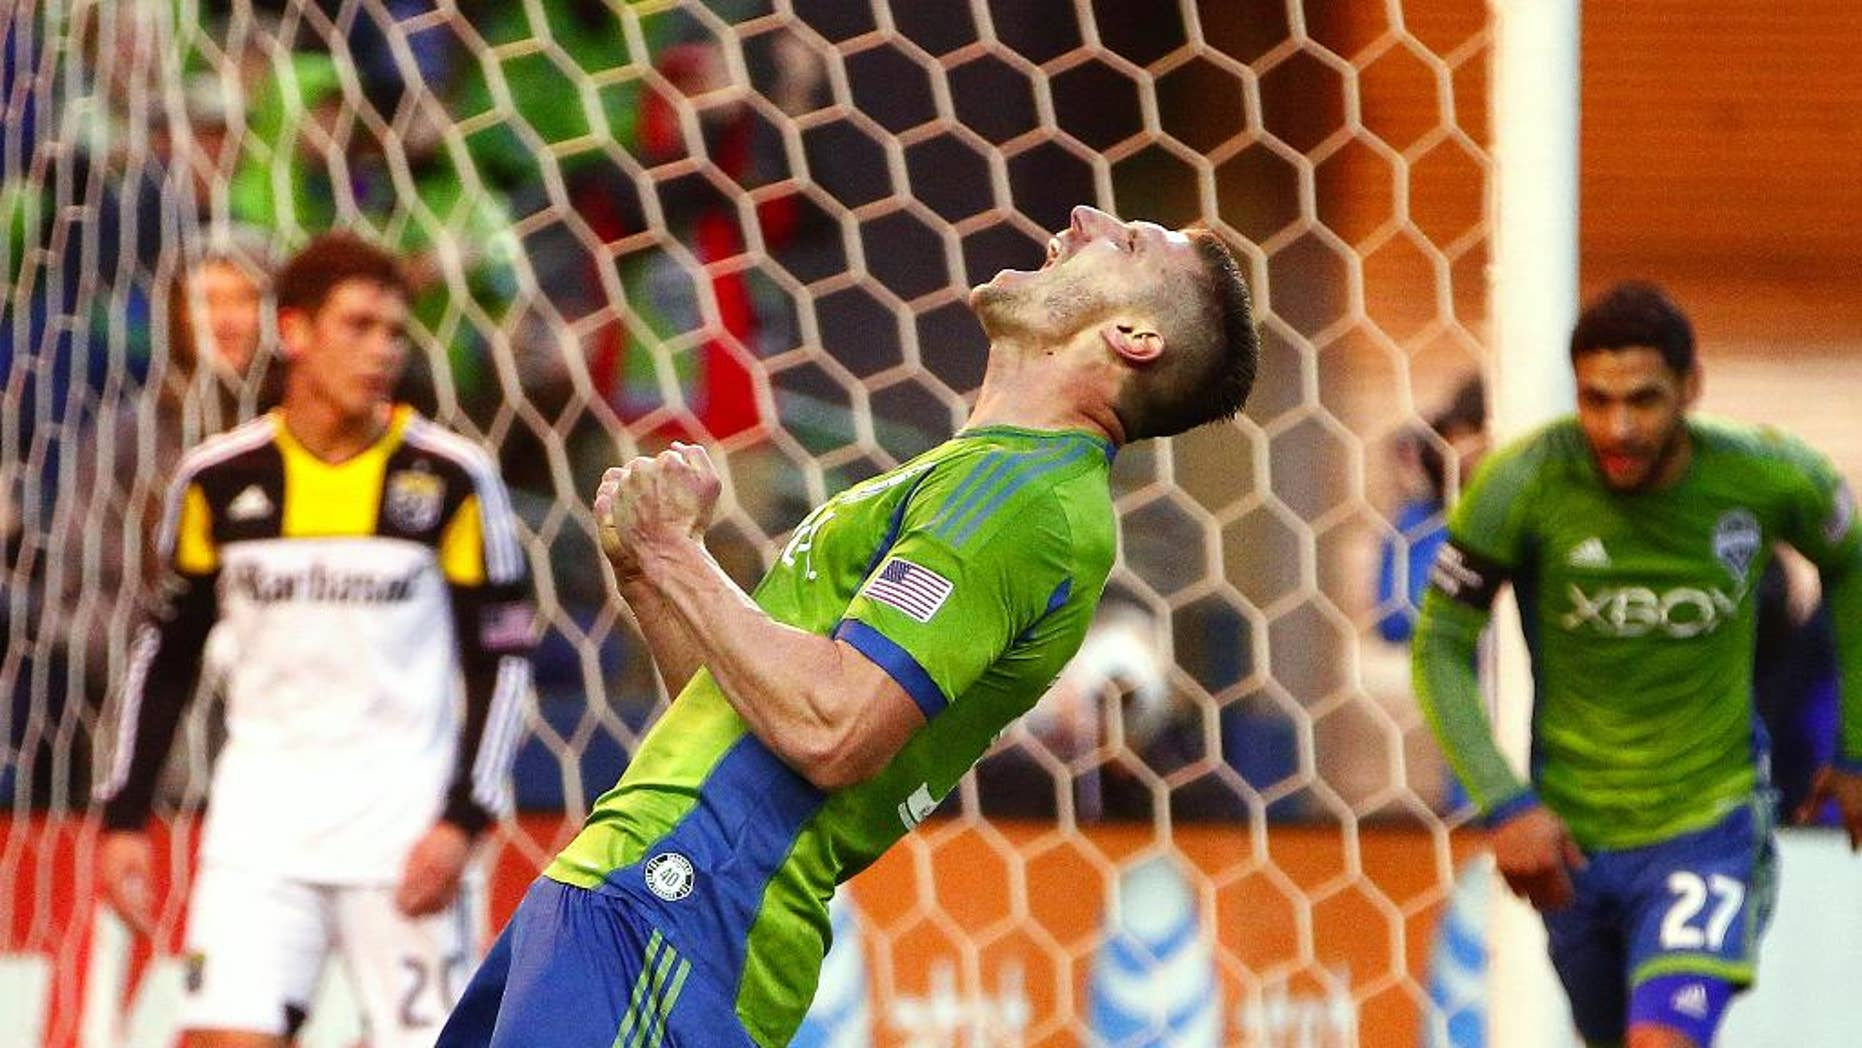 Seattle Sounders midfielder Kenny Cooper celebrates after scoring against Columbus Crew goalkeeper Steve Clark in the first half od an MLS soccer game on Saturday, March 29, 2014, in Seattle, Wash. (AP Photo/The Seattle Times, John Lok) MANDATORY CREDIT TO BOTH THE SEATTLE TIMES AND THE PHOTOGRAPHER; SEATTLE OUT; USA TODAY OUT; MAGAZINES OUT; TV OUT, NO SALES